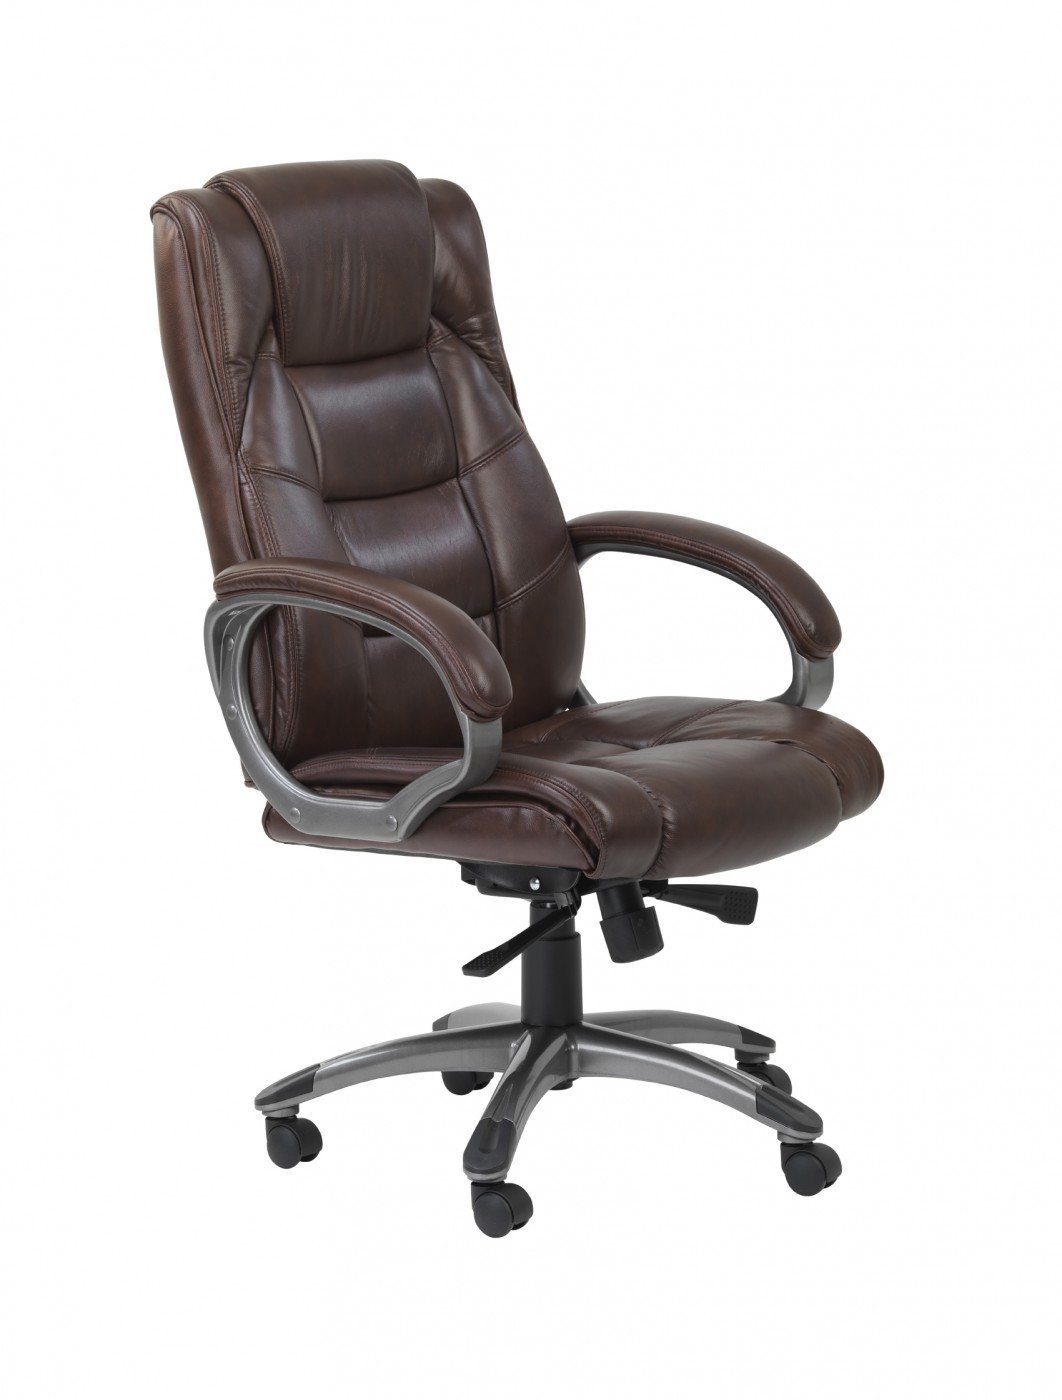 Northland High Back Leather Faced Executive Chair